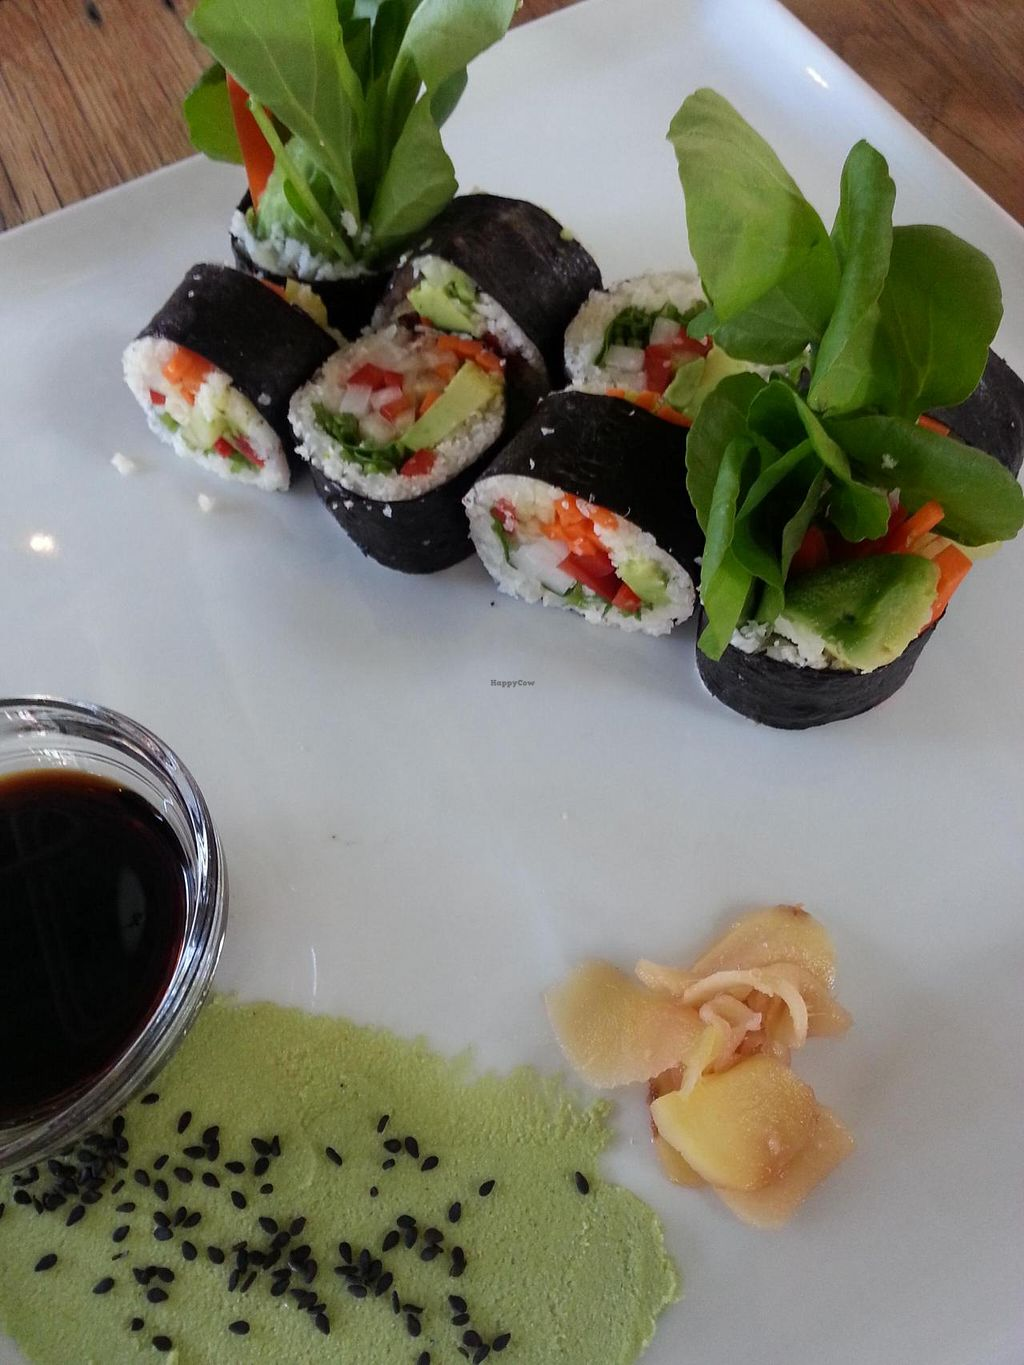 """Photo of CLOSED: M.A.K.E. Raw Cuisine  by <a href=""""/members/profile/radtechg9"""">radtechg9</a> <br/>raw nori rolls with jicama 'rice' <br/> May 14, 2014  - <a href='/contact/abuse/image/34421/69998'>Report</a>"""